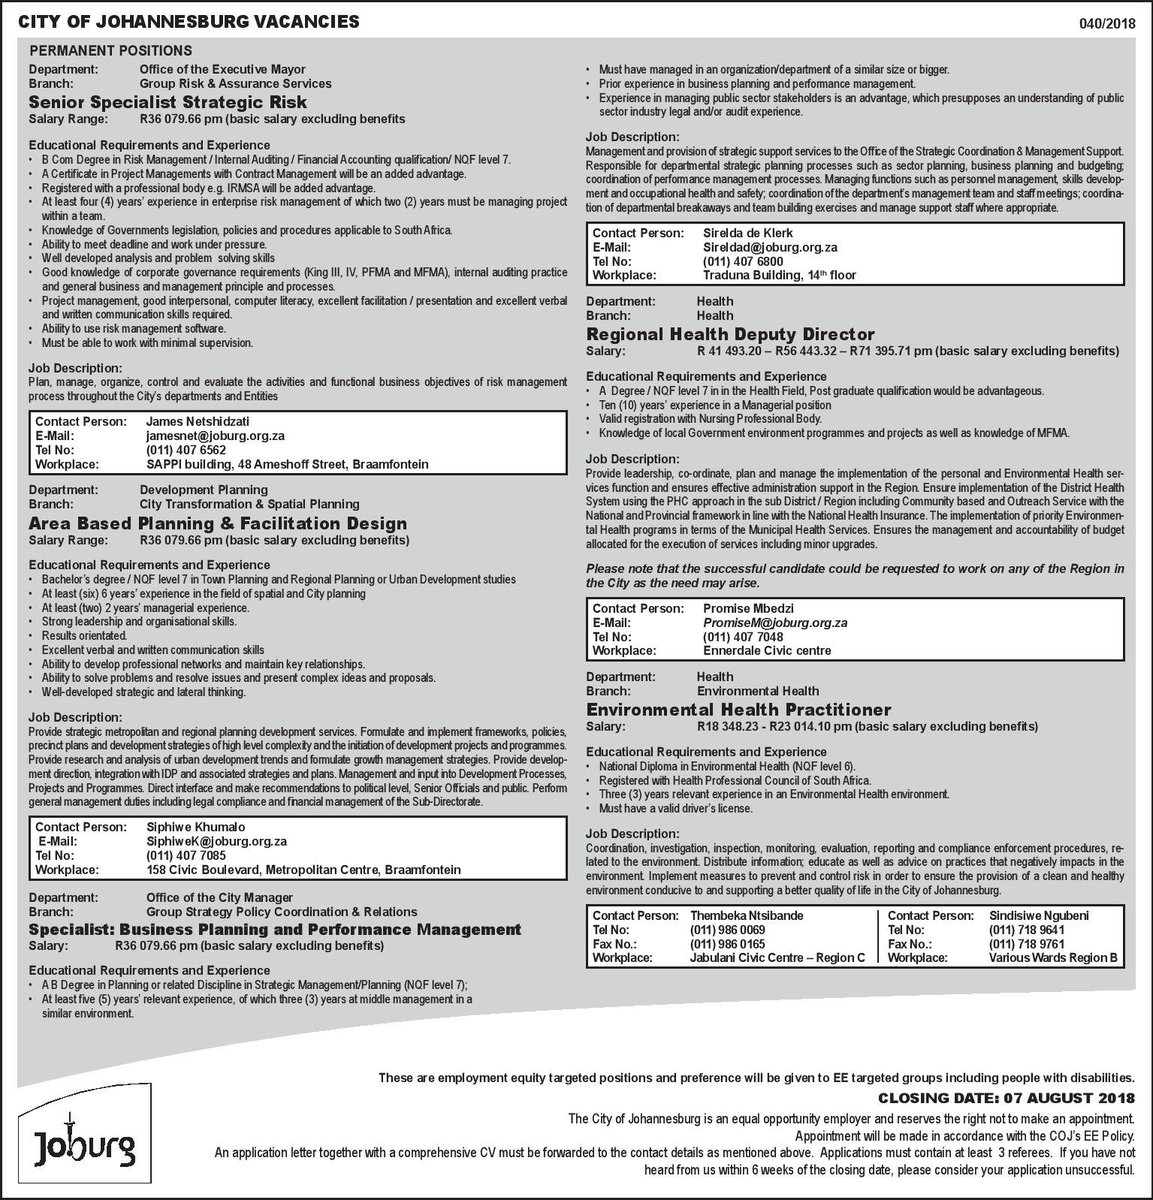 Gkwaqa on twitter go do vetting for yourself all of them you ll see attached for more details tpsjoburgworkdocuments201820docs20tenders20and20quotationsadvert20040 2018 pdf solutioingenieria Choice Image